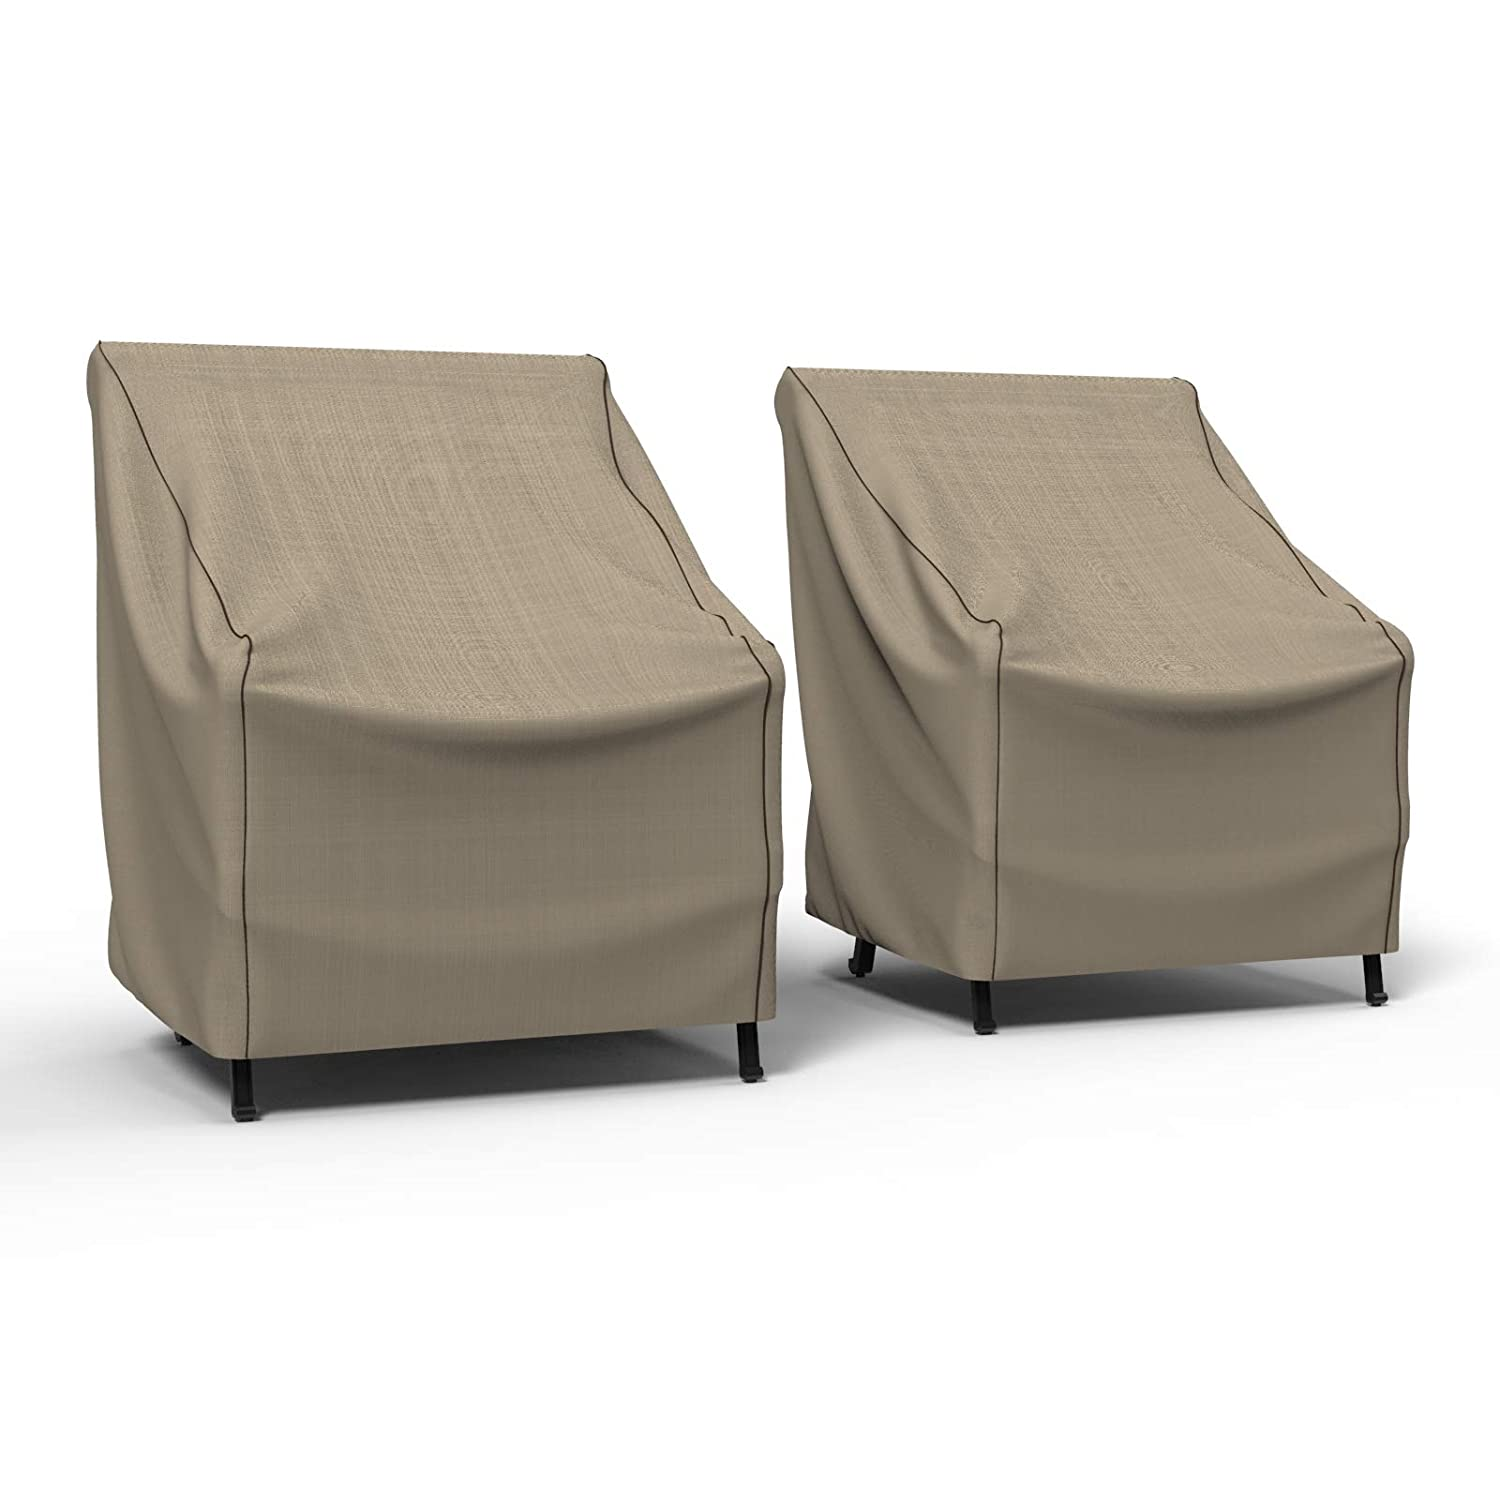 Budge P1A03PM1-2PK English Garden Patio Chair Cover, Small (2-Pack), Tan Tweed